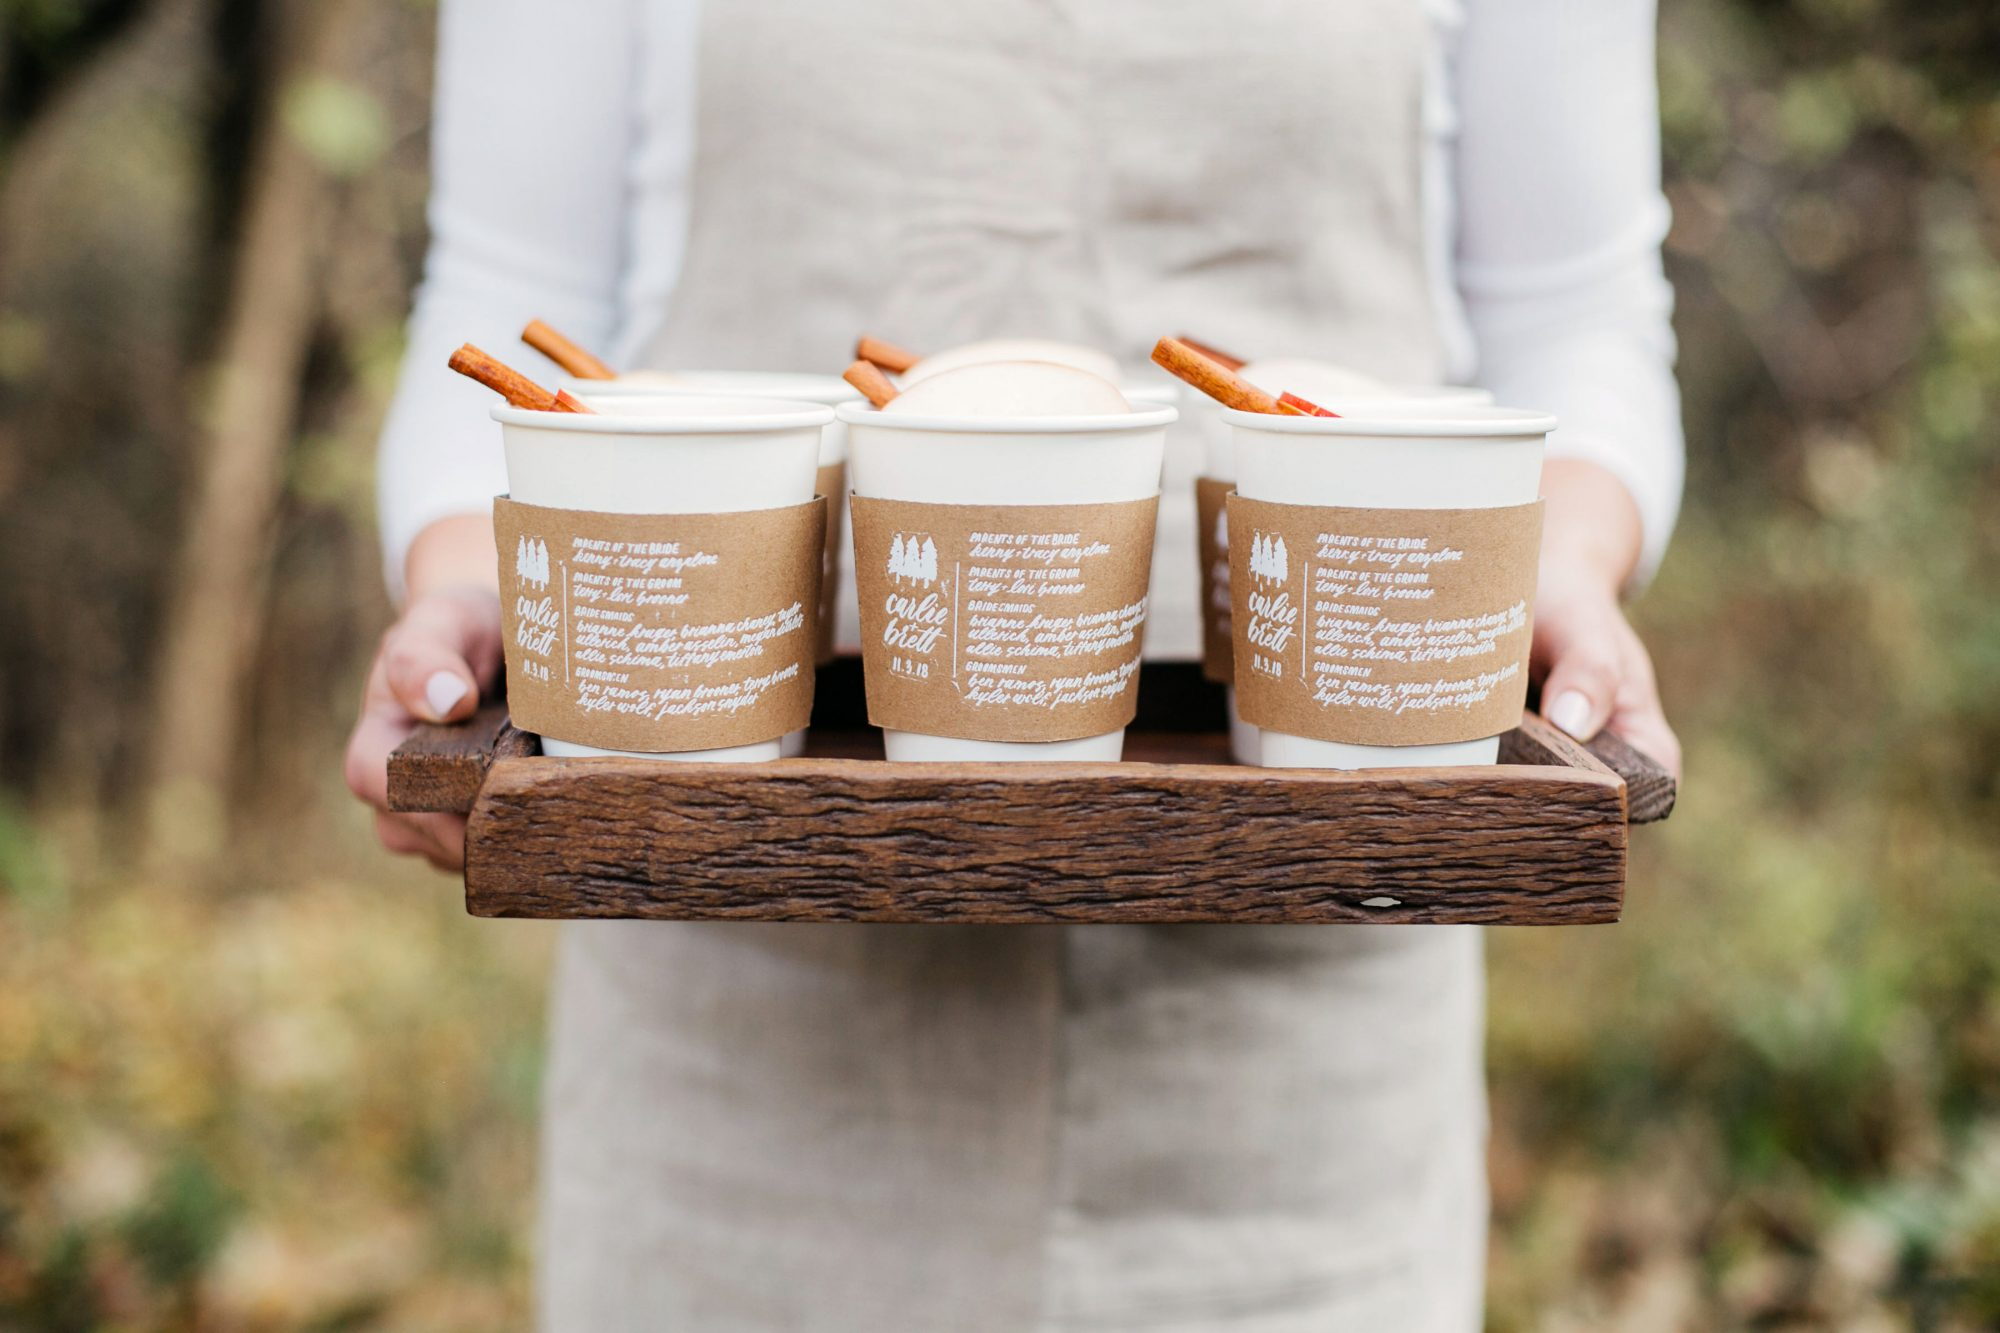 coffee wedding ideas tray of beverages with custom cardboard sleeves